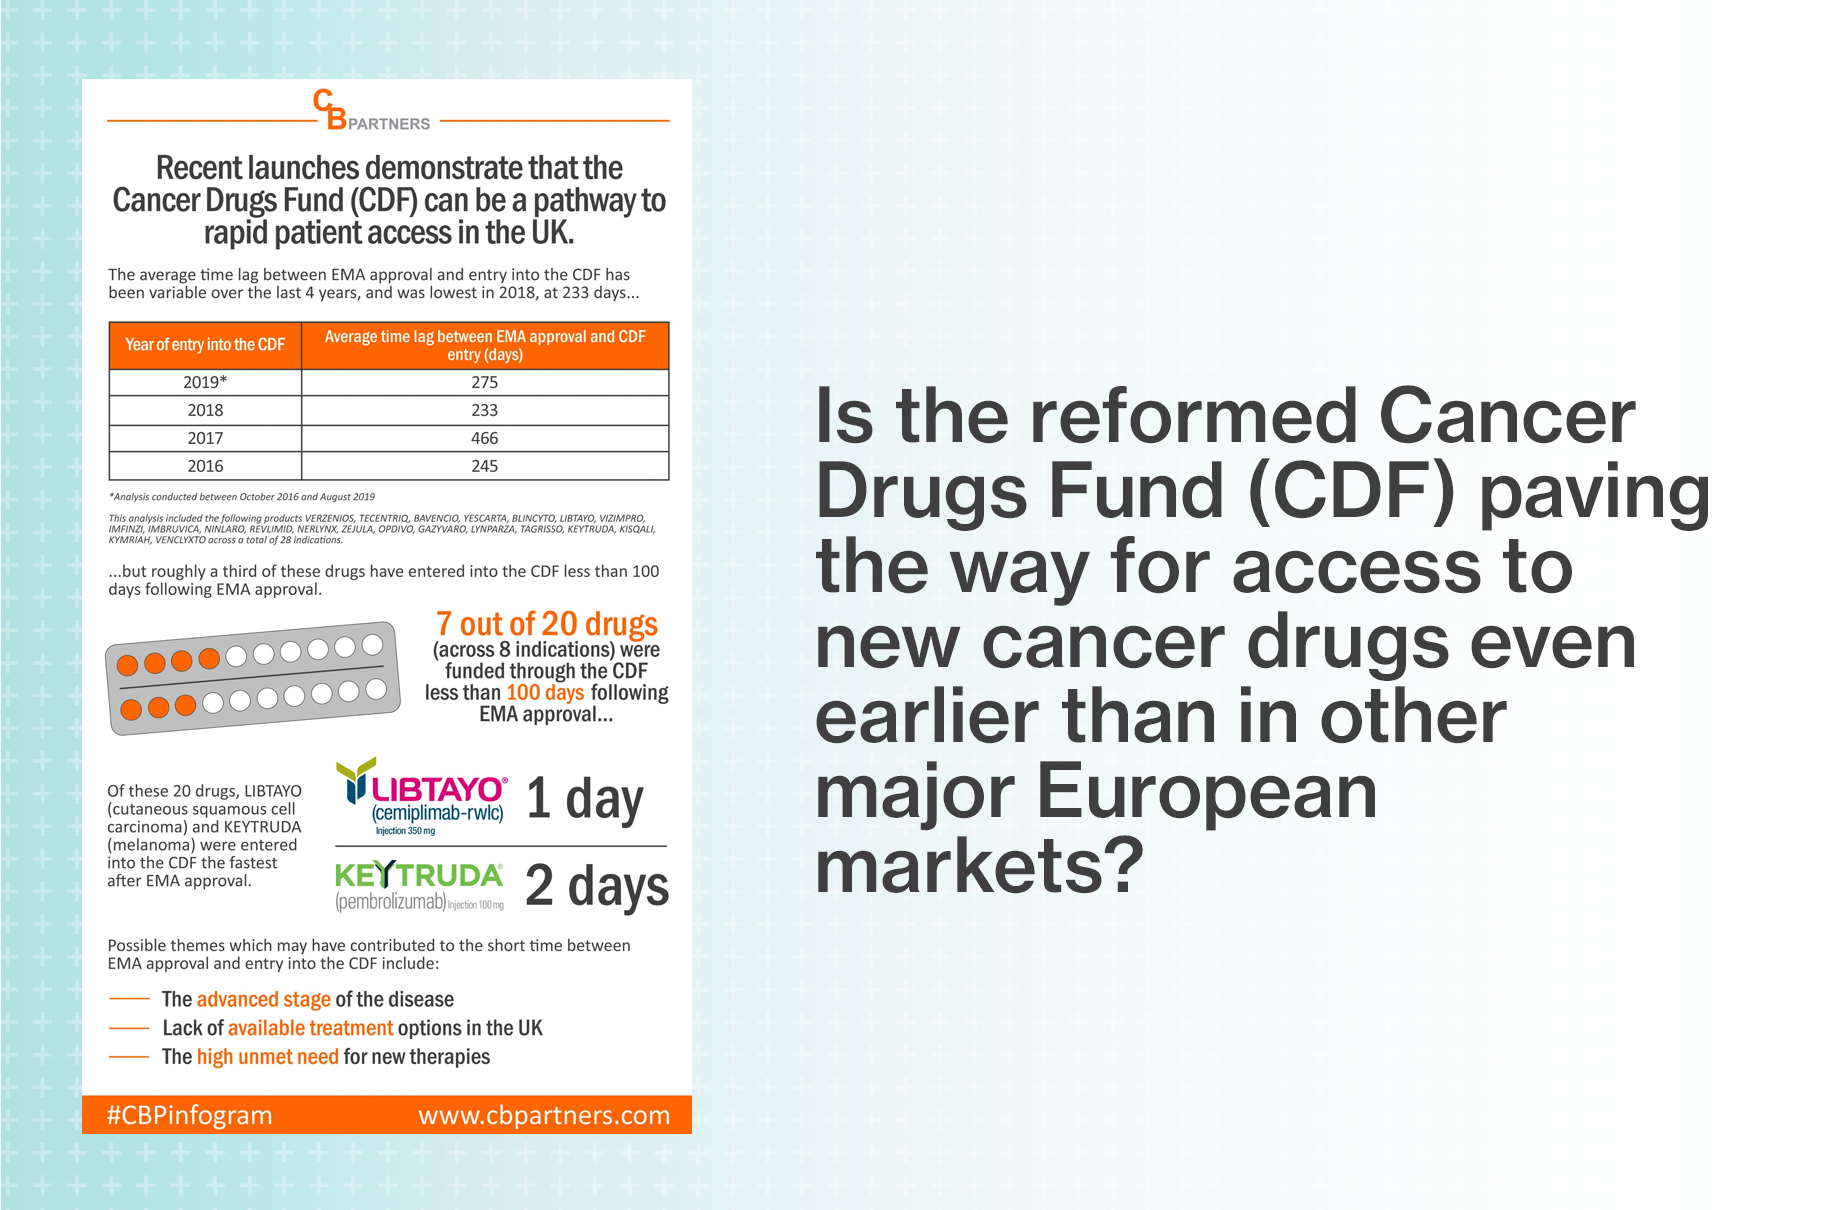 Cancer Drugs Fund Infographic from CBPartners